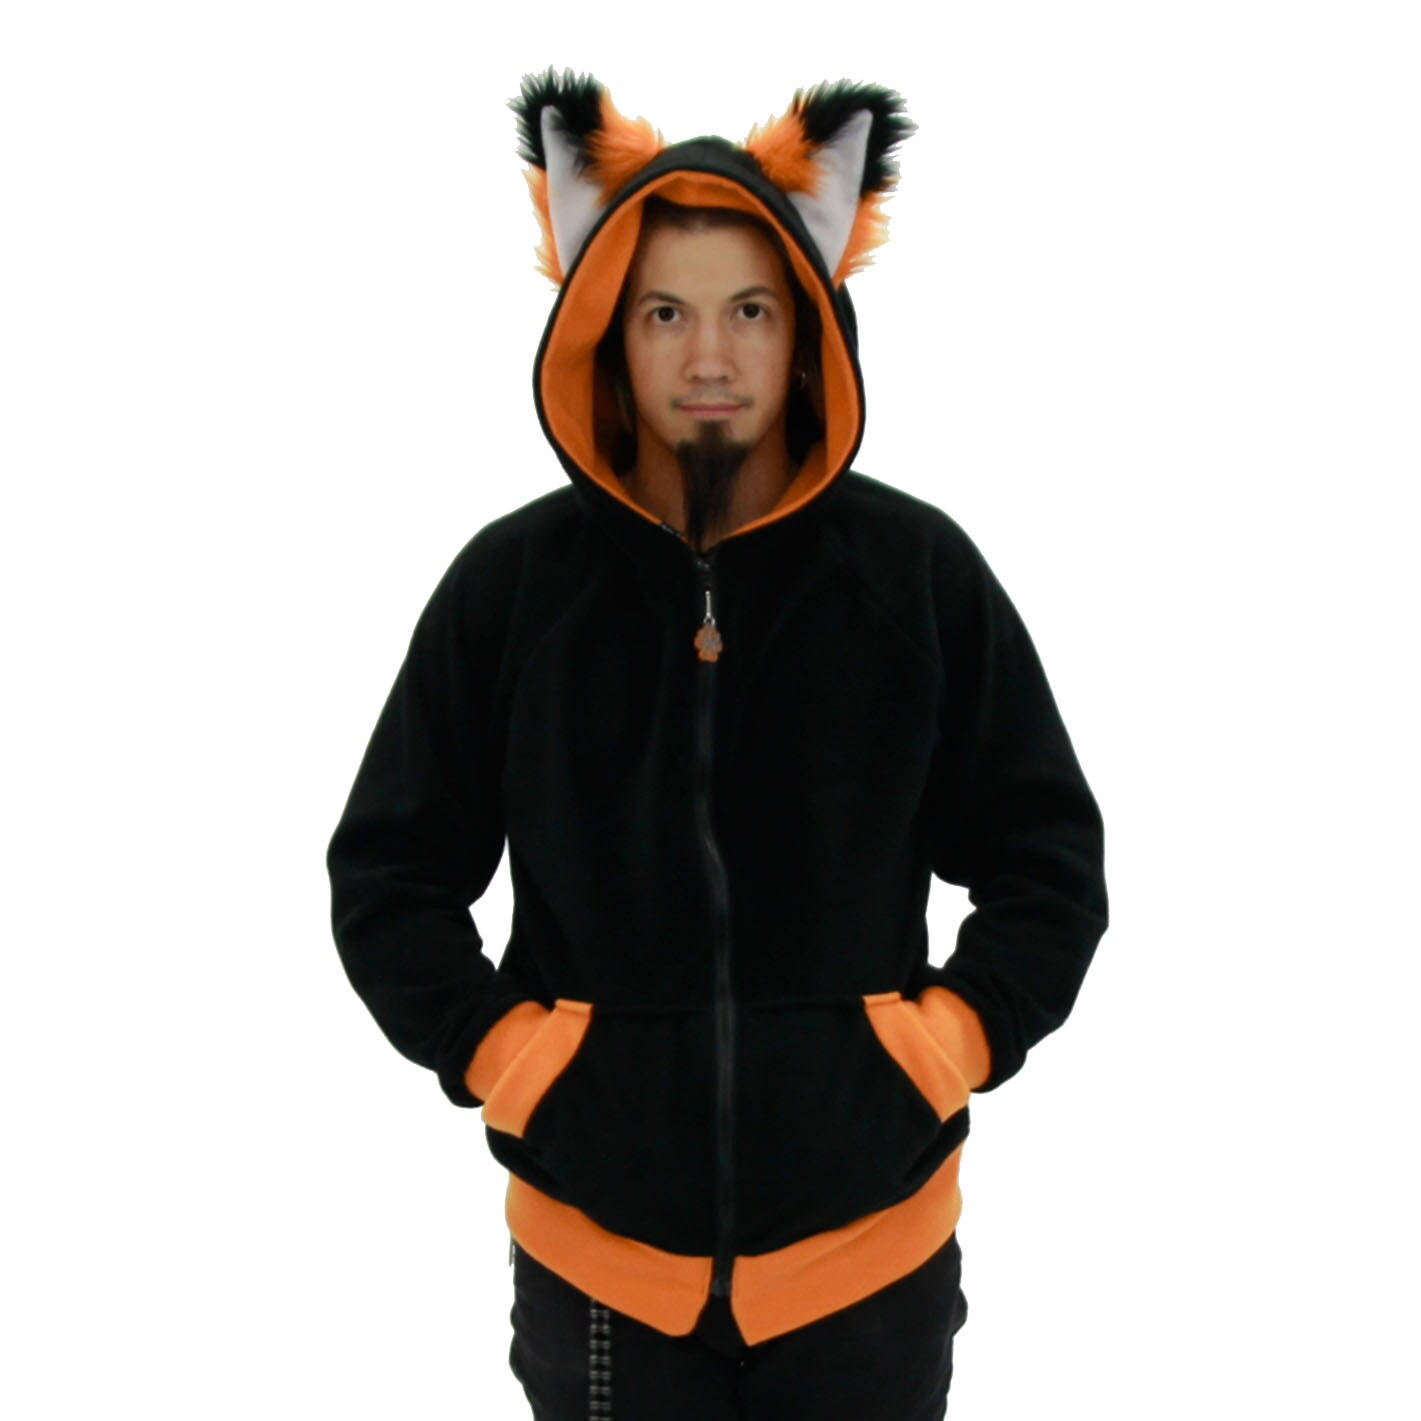 f29c786be7137 20+ Orange Fox Hoodie With Ears Pictures and Ideas on Meta Networks